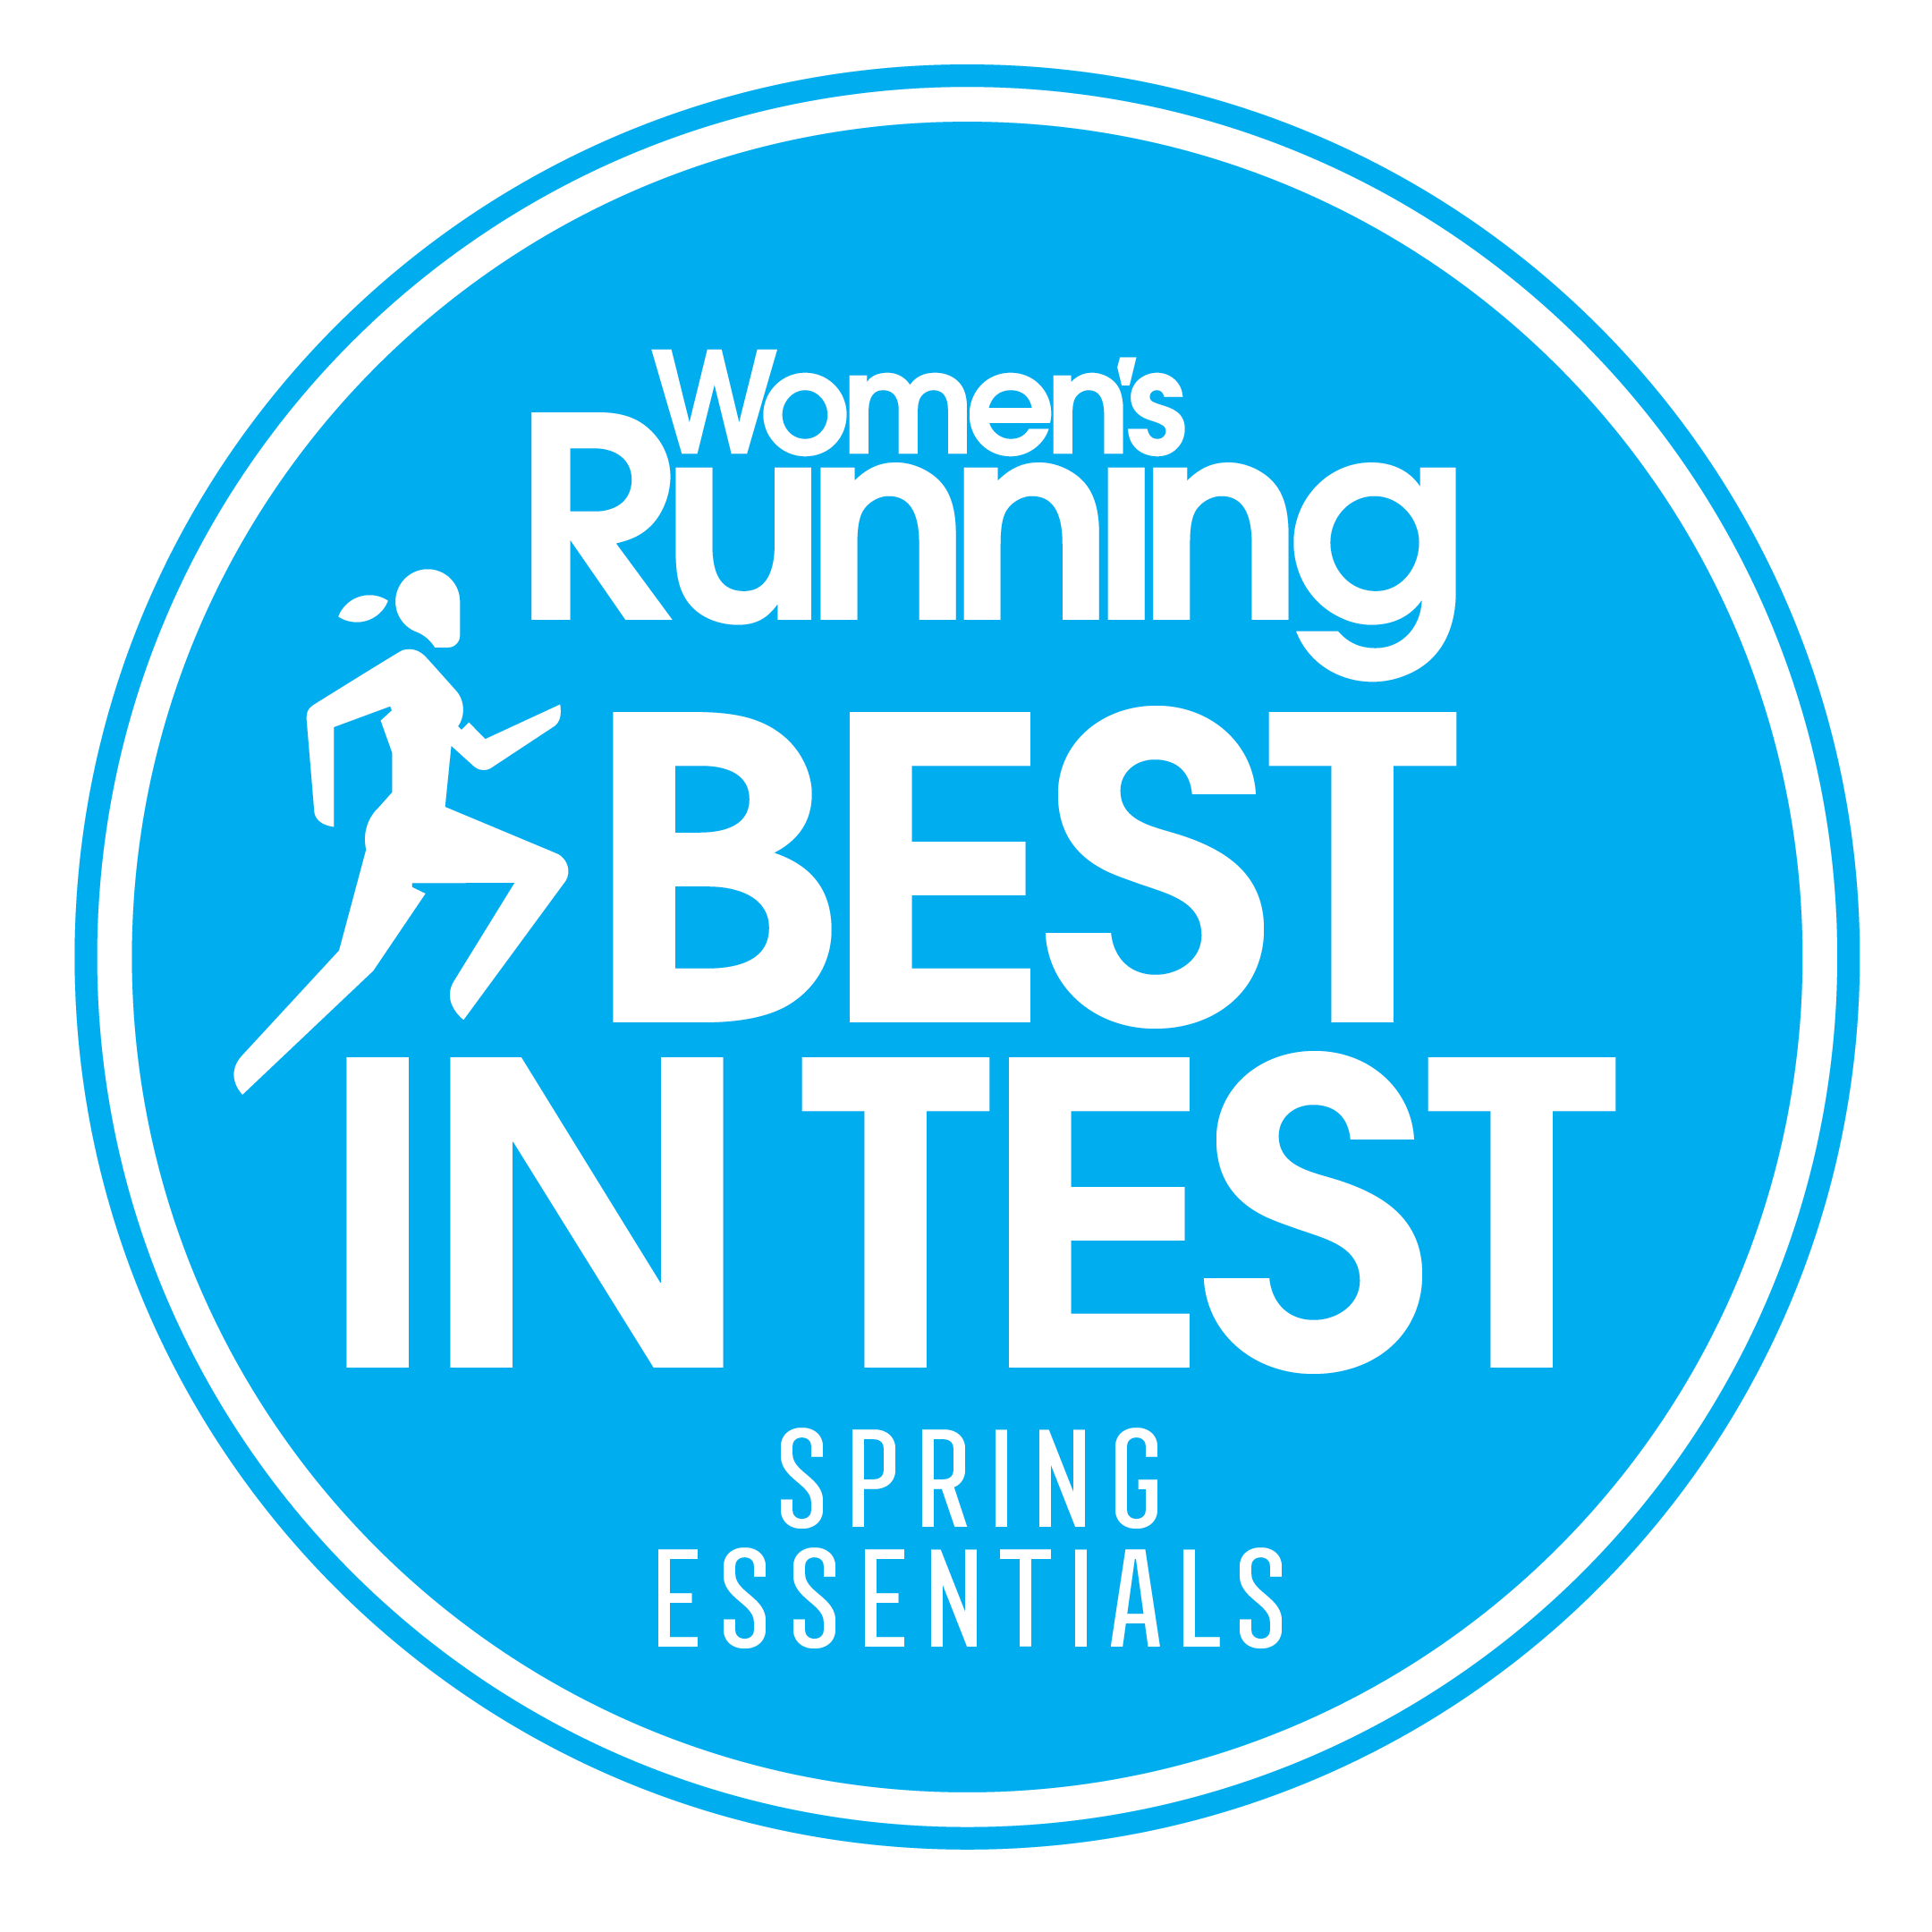 Women's Running Best in Test Award Spring Essentials 2021